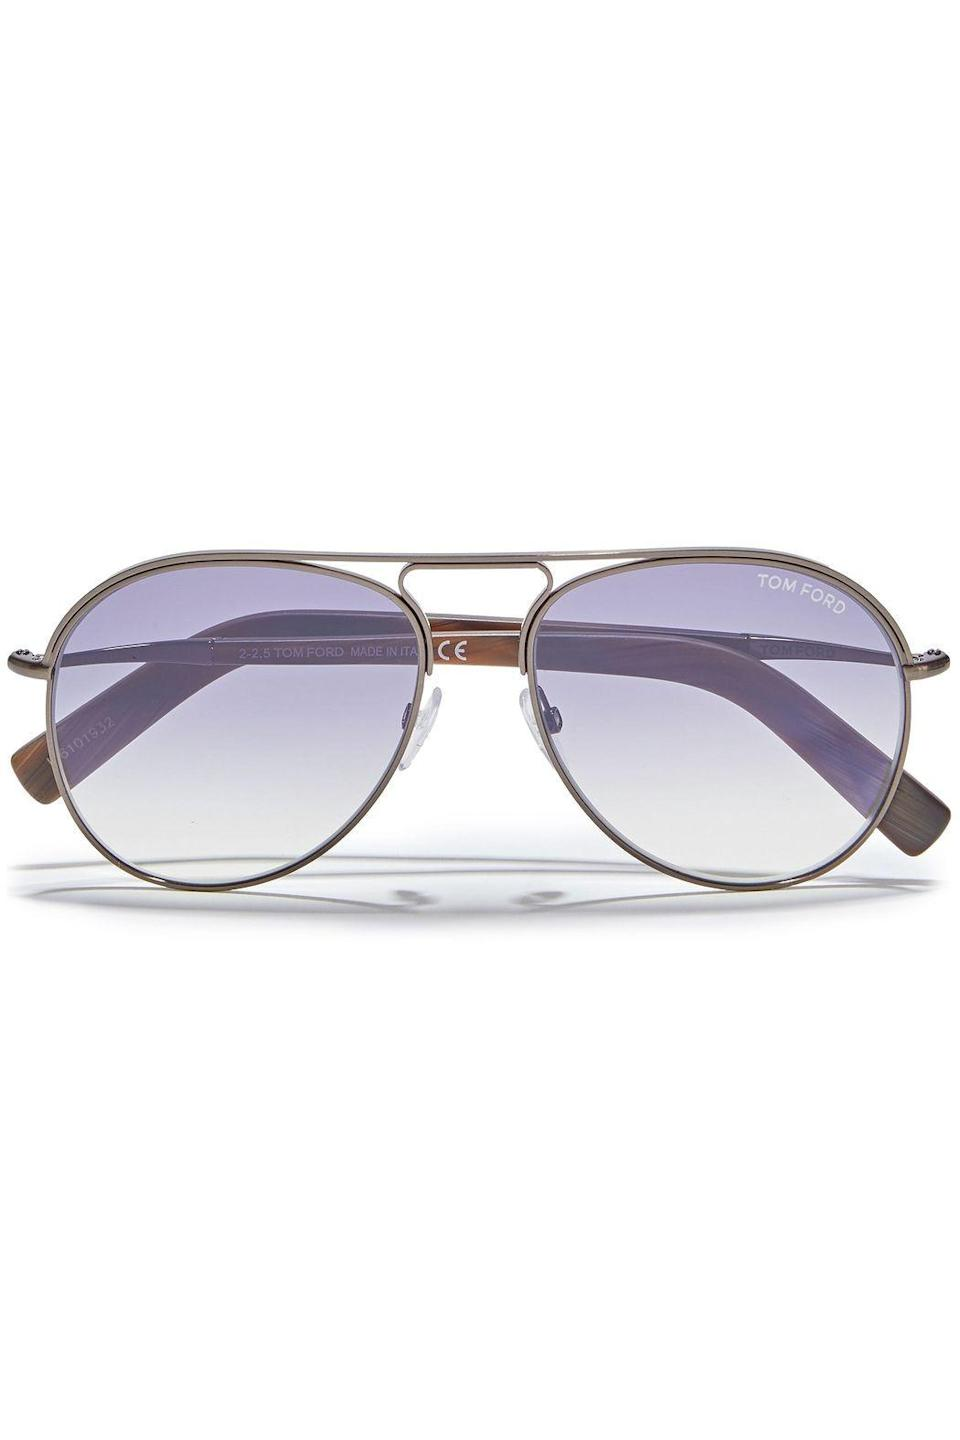 """<p><strong>TOM FORD</strong></p><p>theoutnet.com</p><p><strong>$148.00</strong></p><p><a href=""""https://go.redirectingat.com?id=74968X1596630&url=https%3A%2F%2Fwww.theoutnet.com%2Fen-us%2Fshop%2Fproduct%2Ftom-ford%2Fsunglasses%2Faviator%2Faviator-style-gunmetal-tone-sunglasses%2F17957409491053979&sref=https%3A%2F%2Fwww.elle.com%2Ffashion%2Fshopping%2Fg33595007%2Fthe-outnet-clearance-summer-2020-sale%2F"""" rel=""""nofollow noopener"""" target=""""_blank"""" data-ylk=""""slk:Shop Now"""" class=""""link rapid-noclick-resp"""">Shop Now</a></p>"""